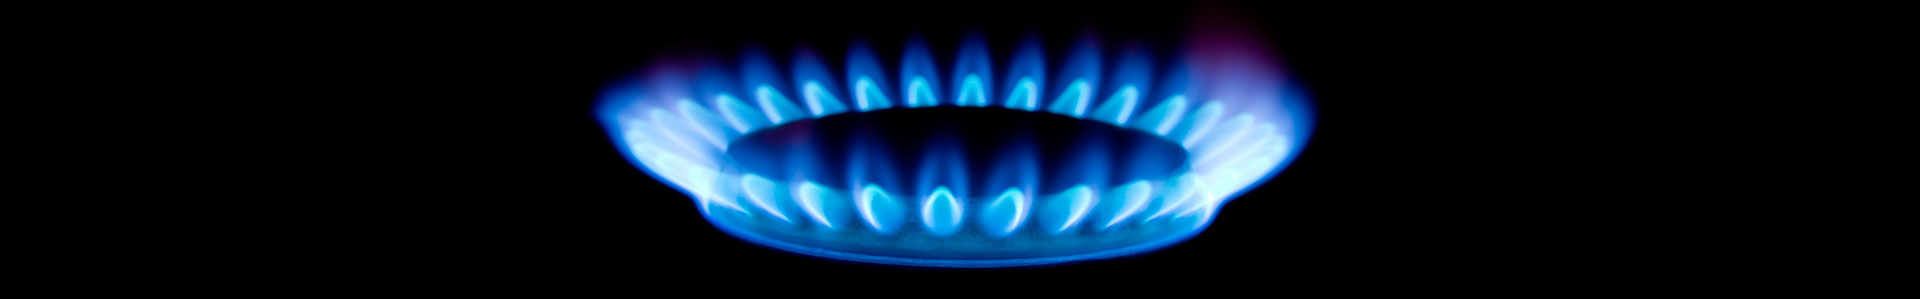 gas appliance installation melbourne